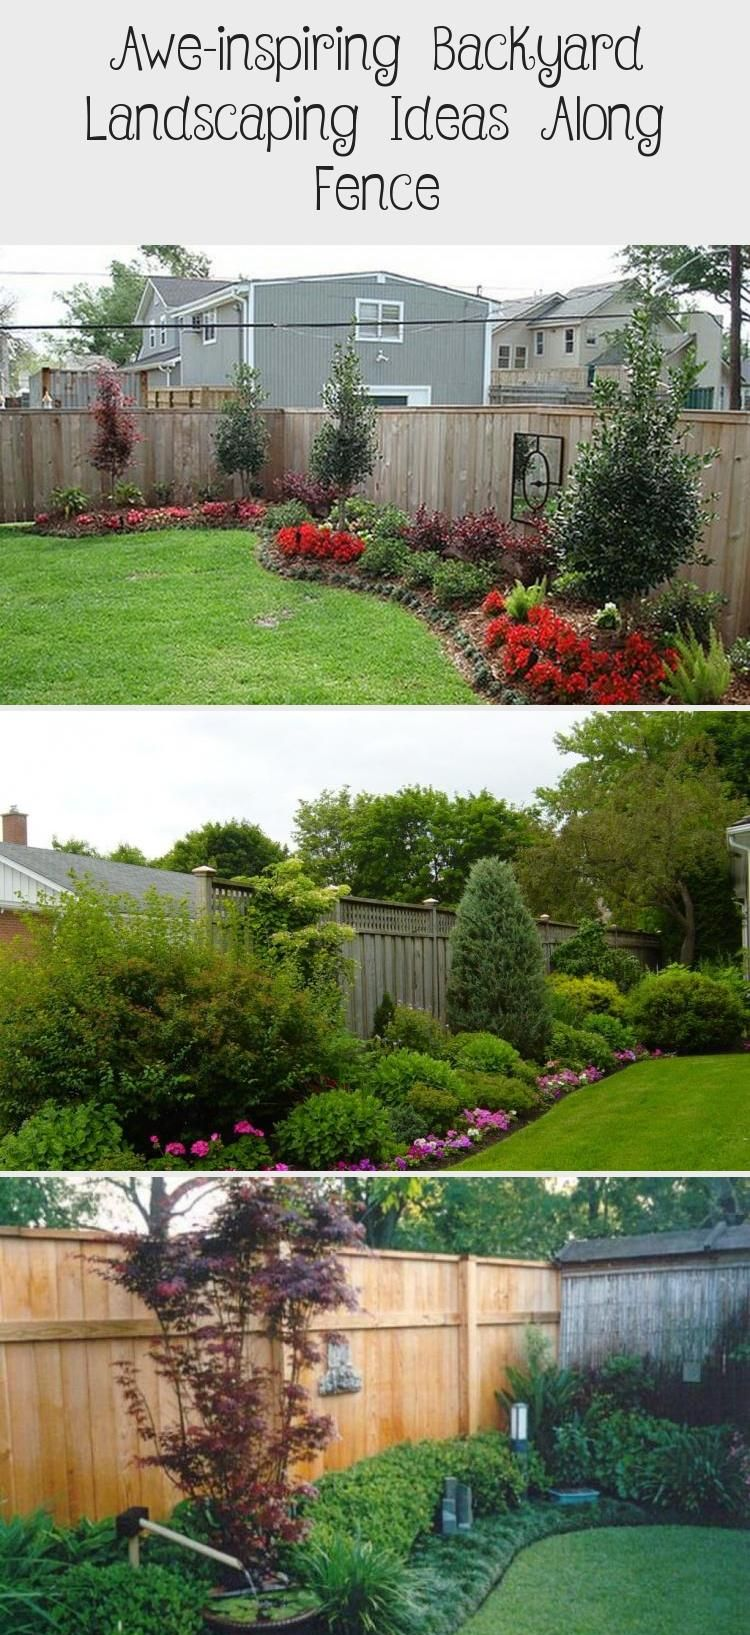 Aweinspiring Backyard Landscaping Ideas Along Fence Aweinspiring Backyard Landscaping Ideas Along Fence Now some individuals wont ever carry out any of their ideas as the...